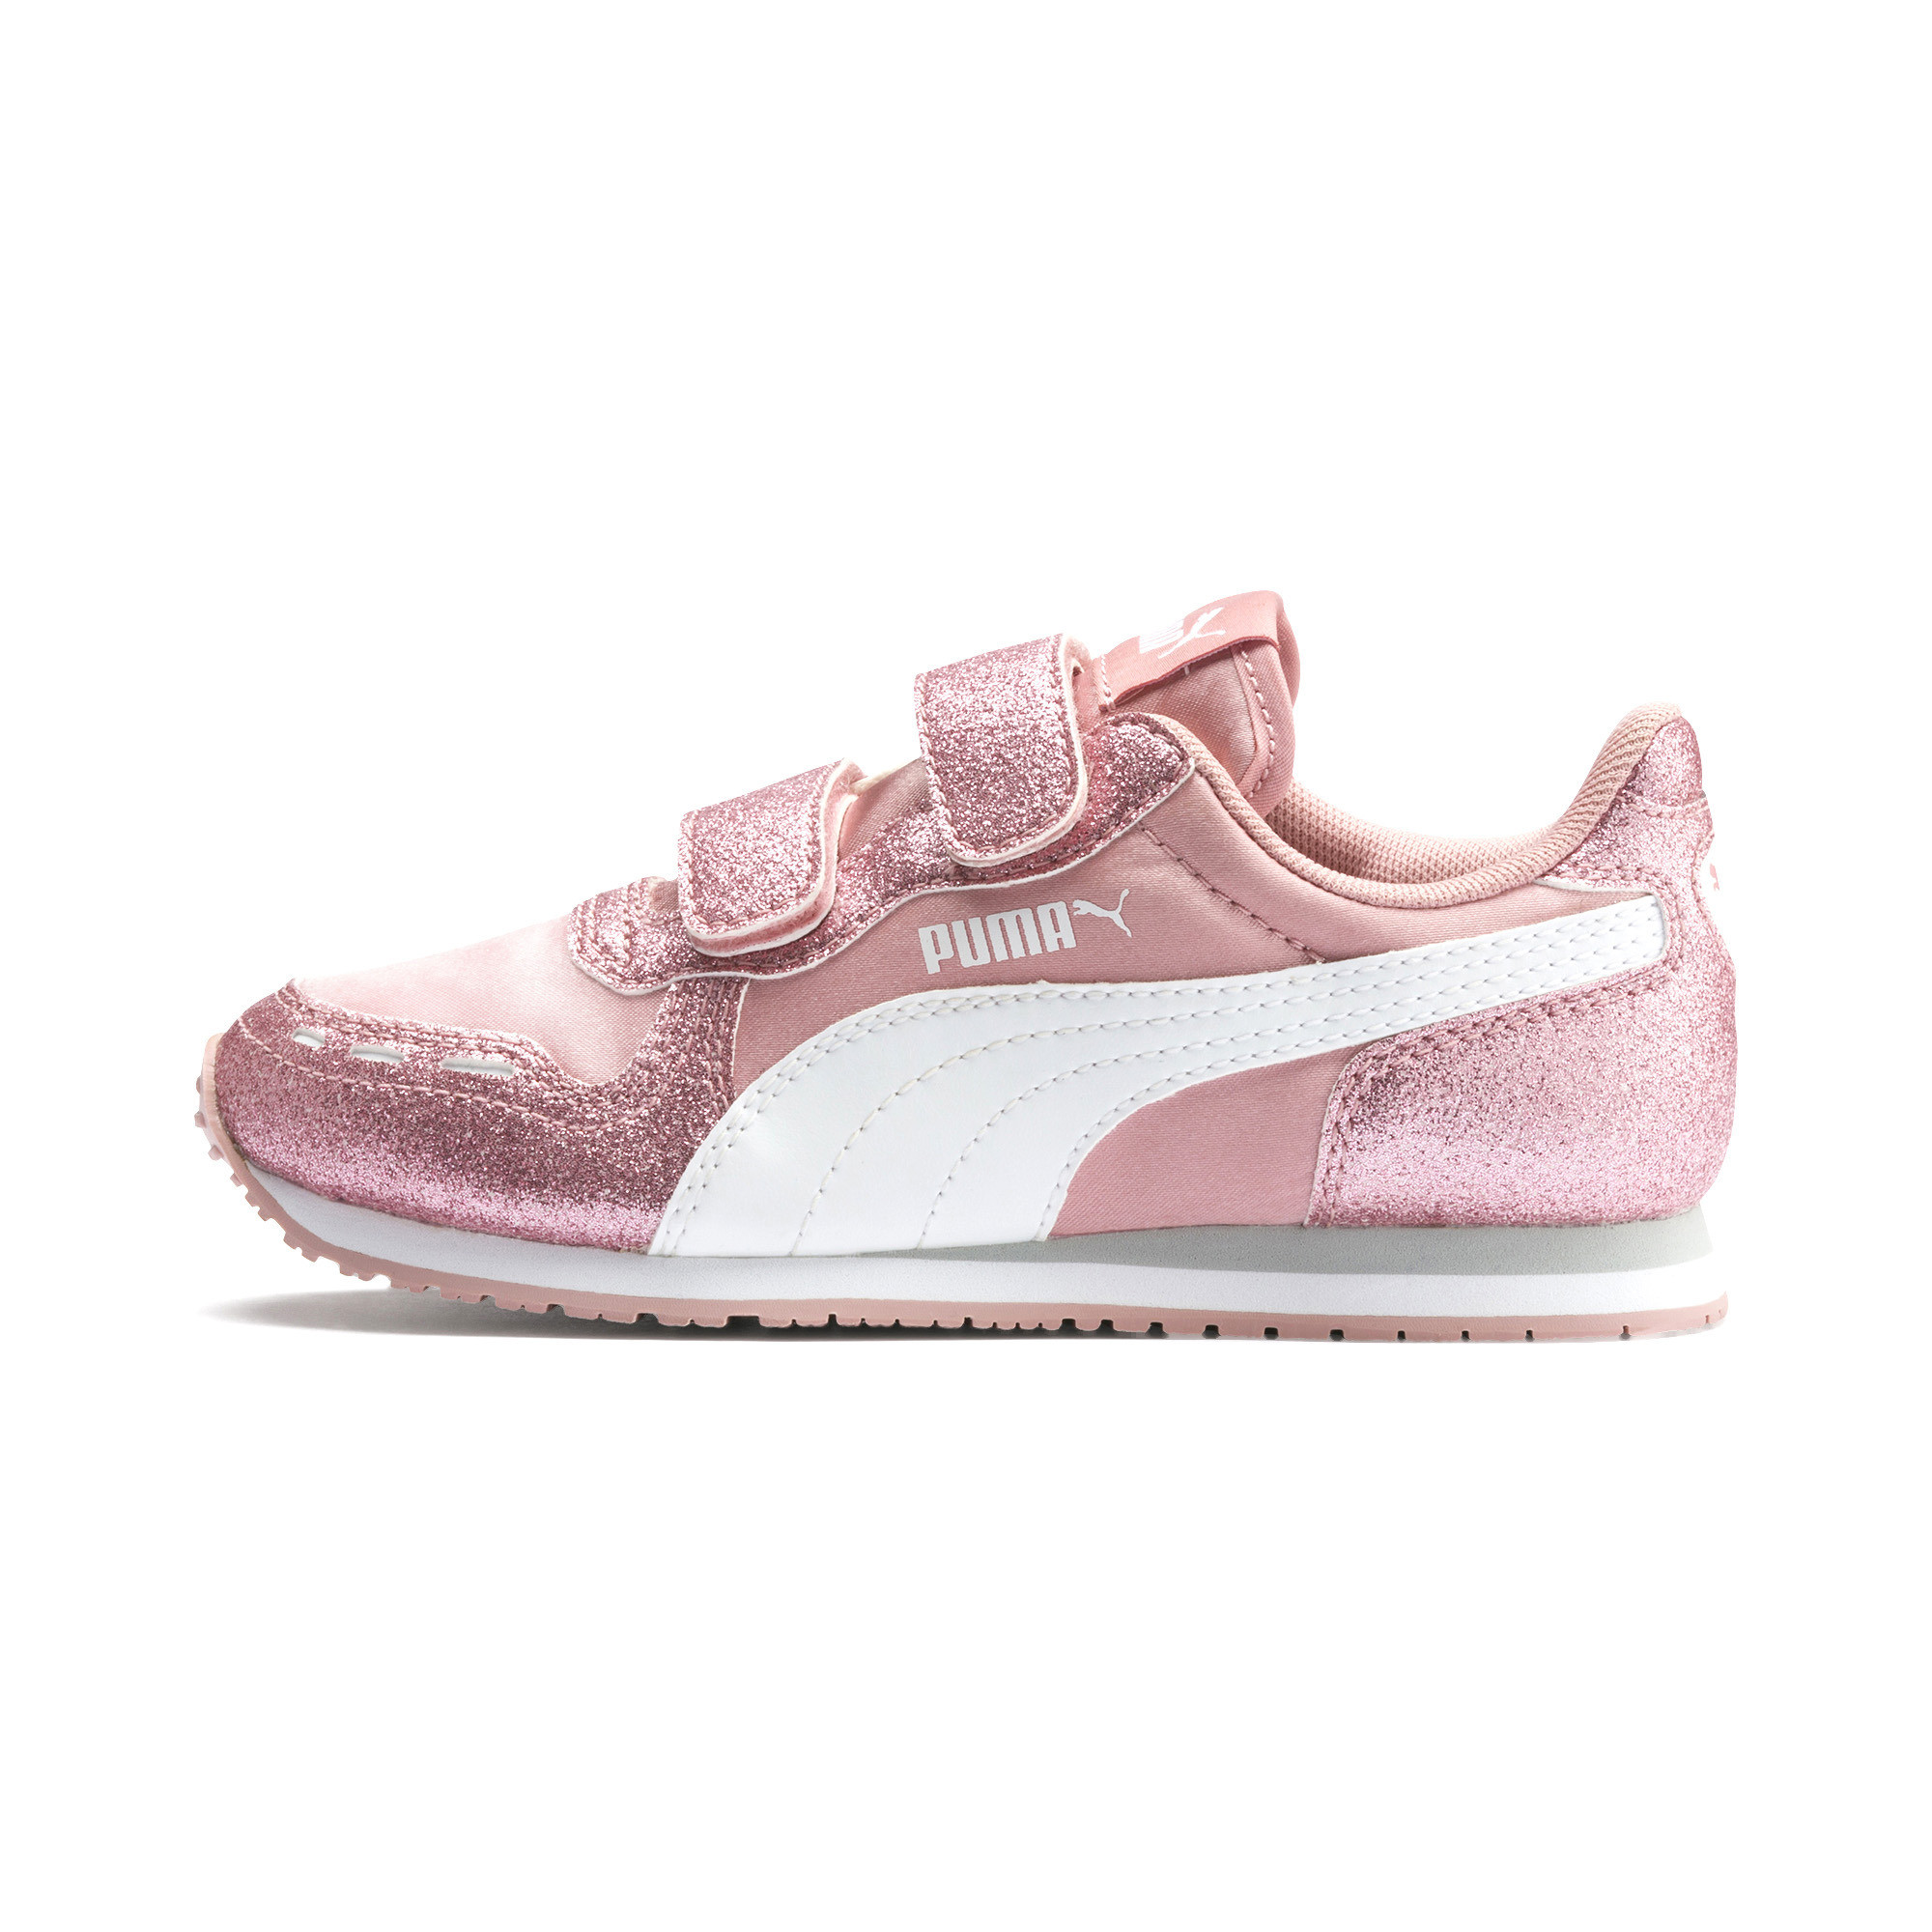 PUMA-Cabana-Racer-Glitz-AC-Shoes-PS-Girls-Shoe-Kids thumbnail 4